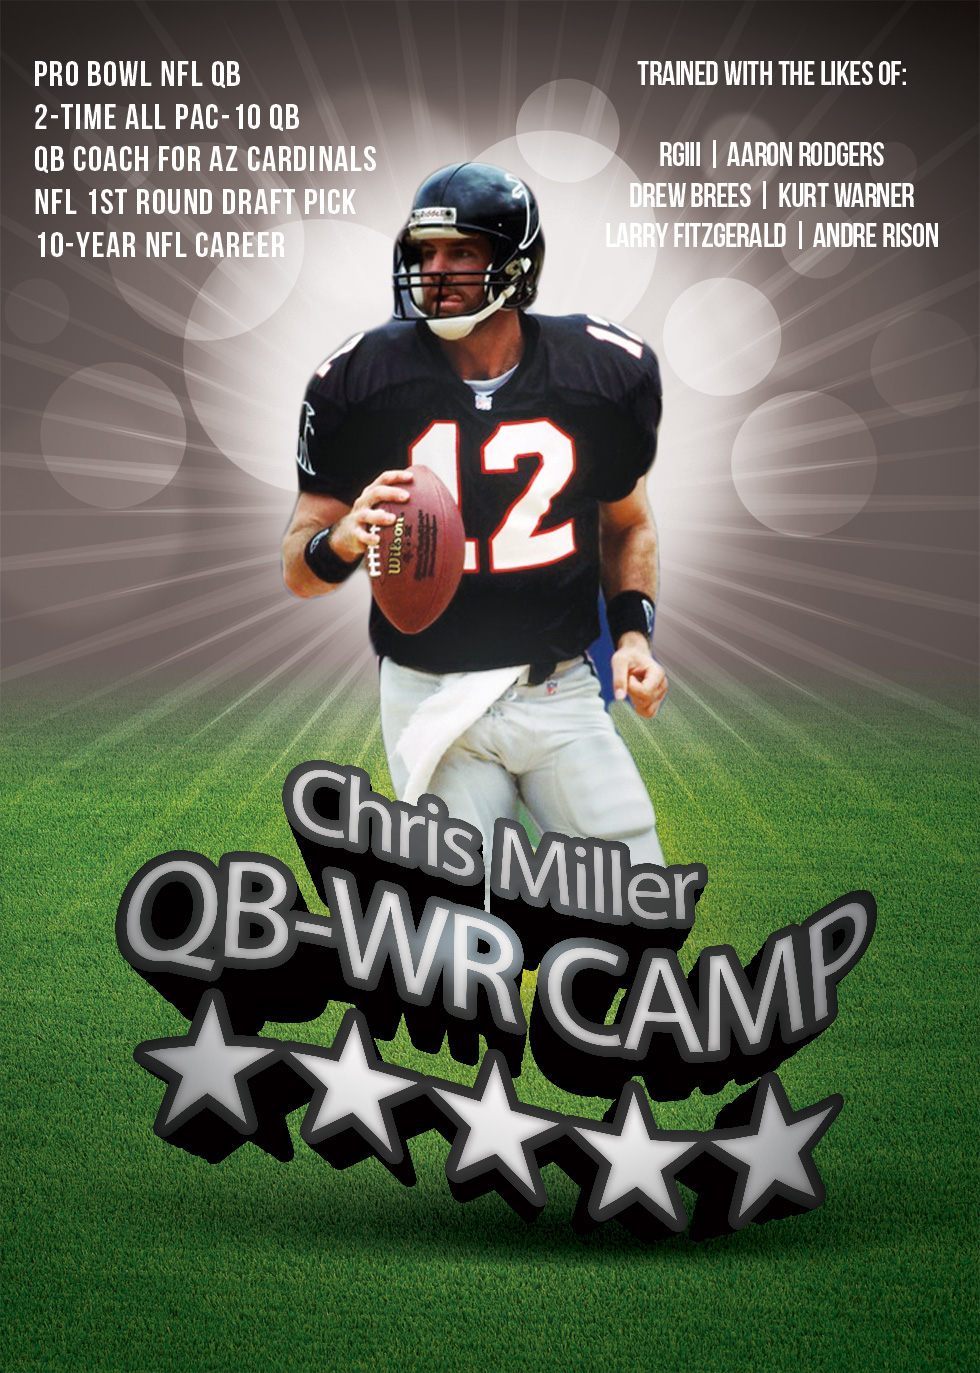 Chris miller qb camp generic